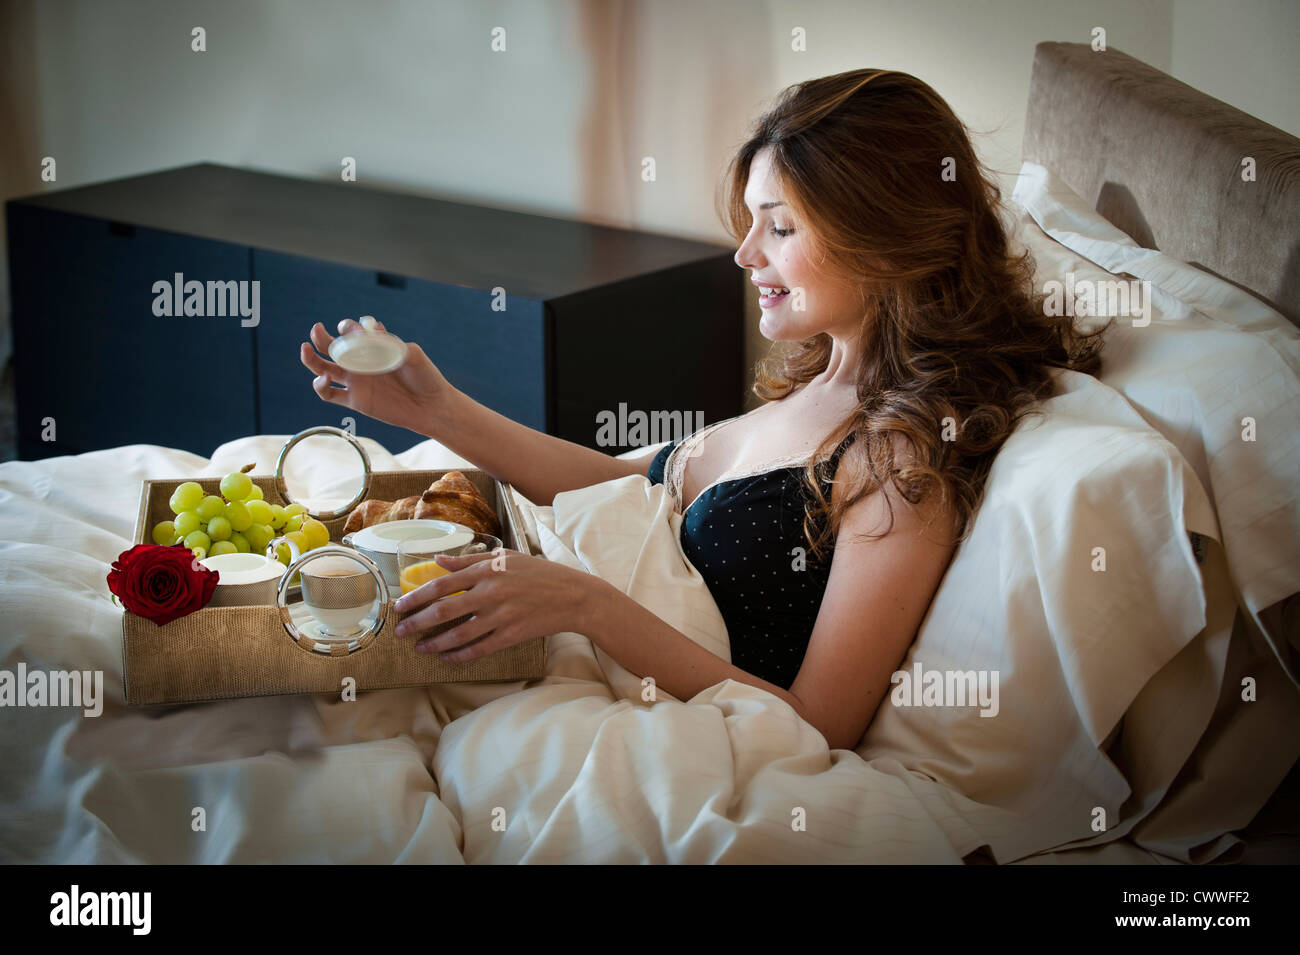 Woman eating breakfast in bed - Stock Image